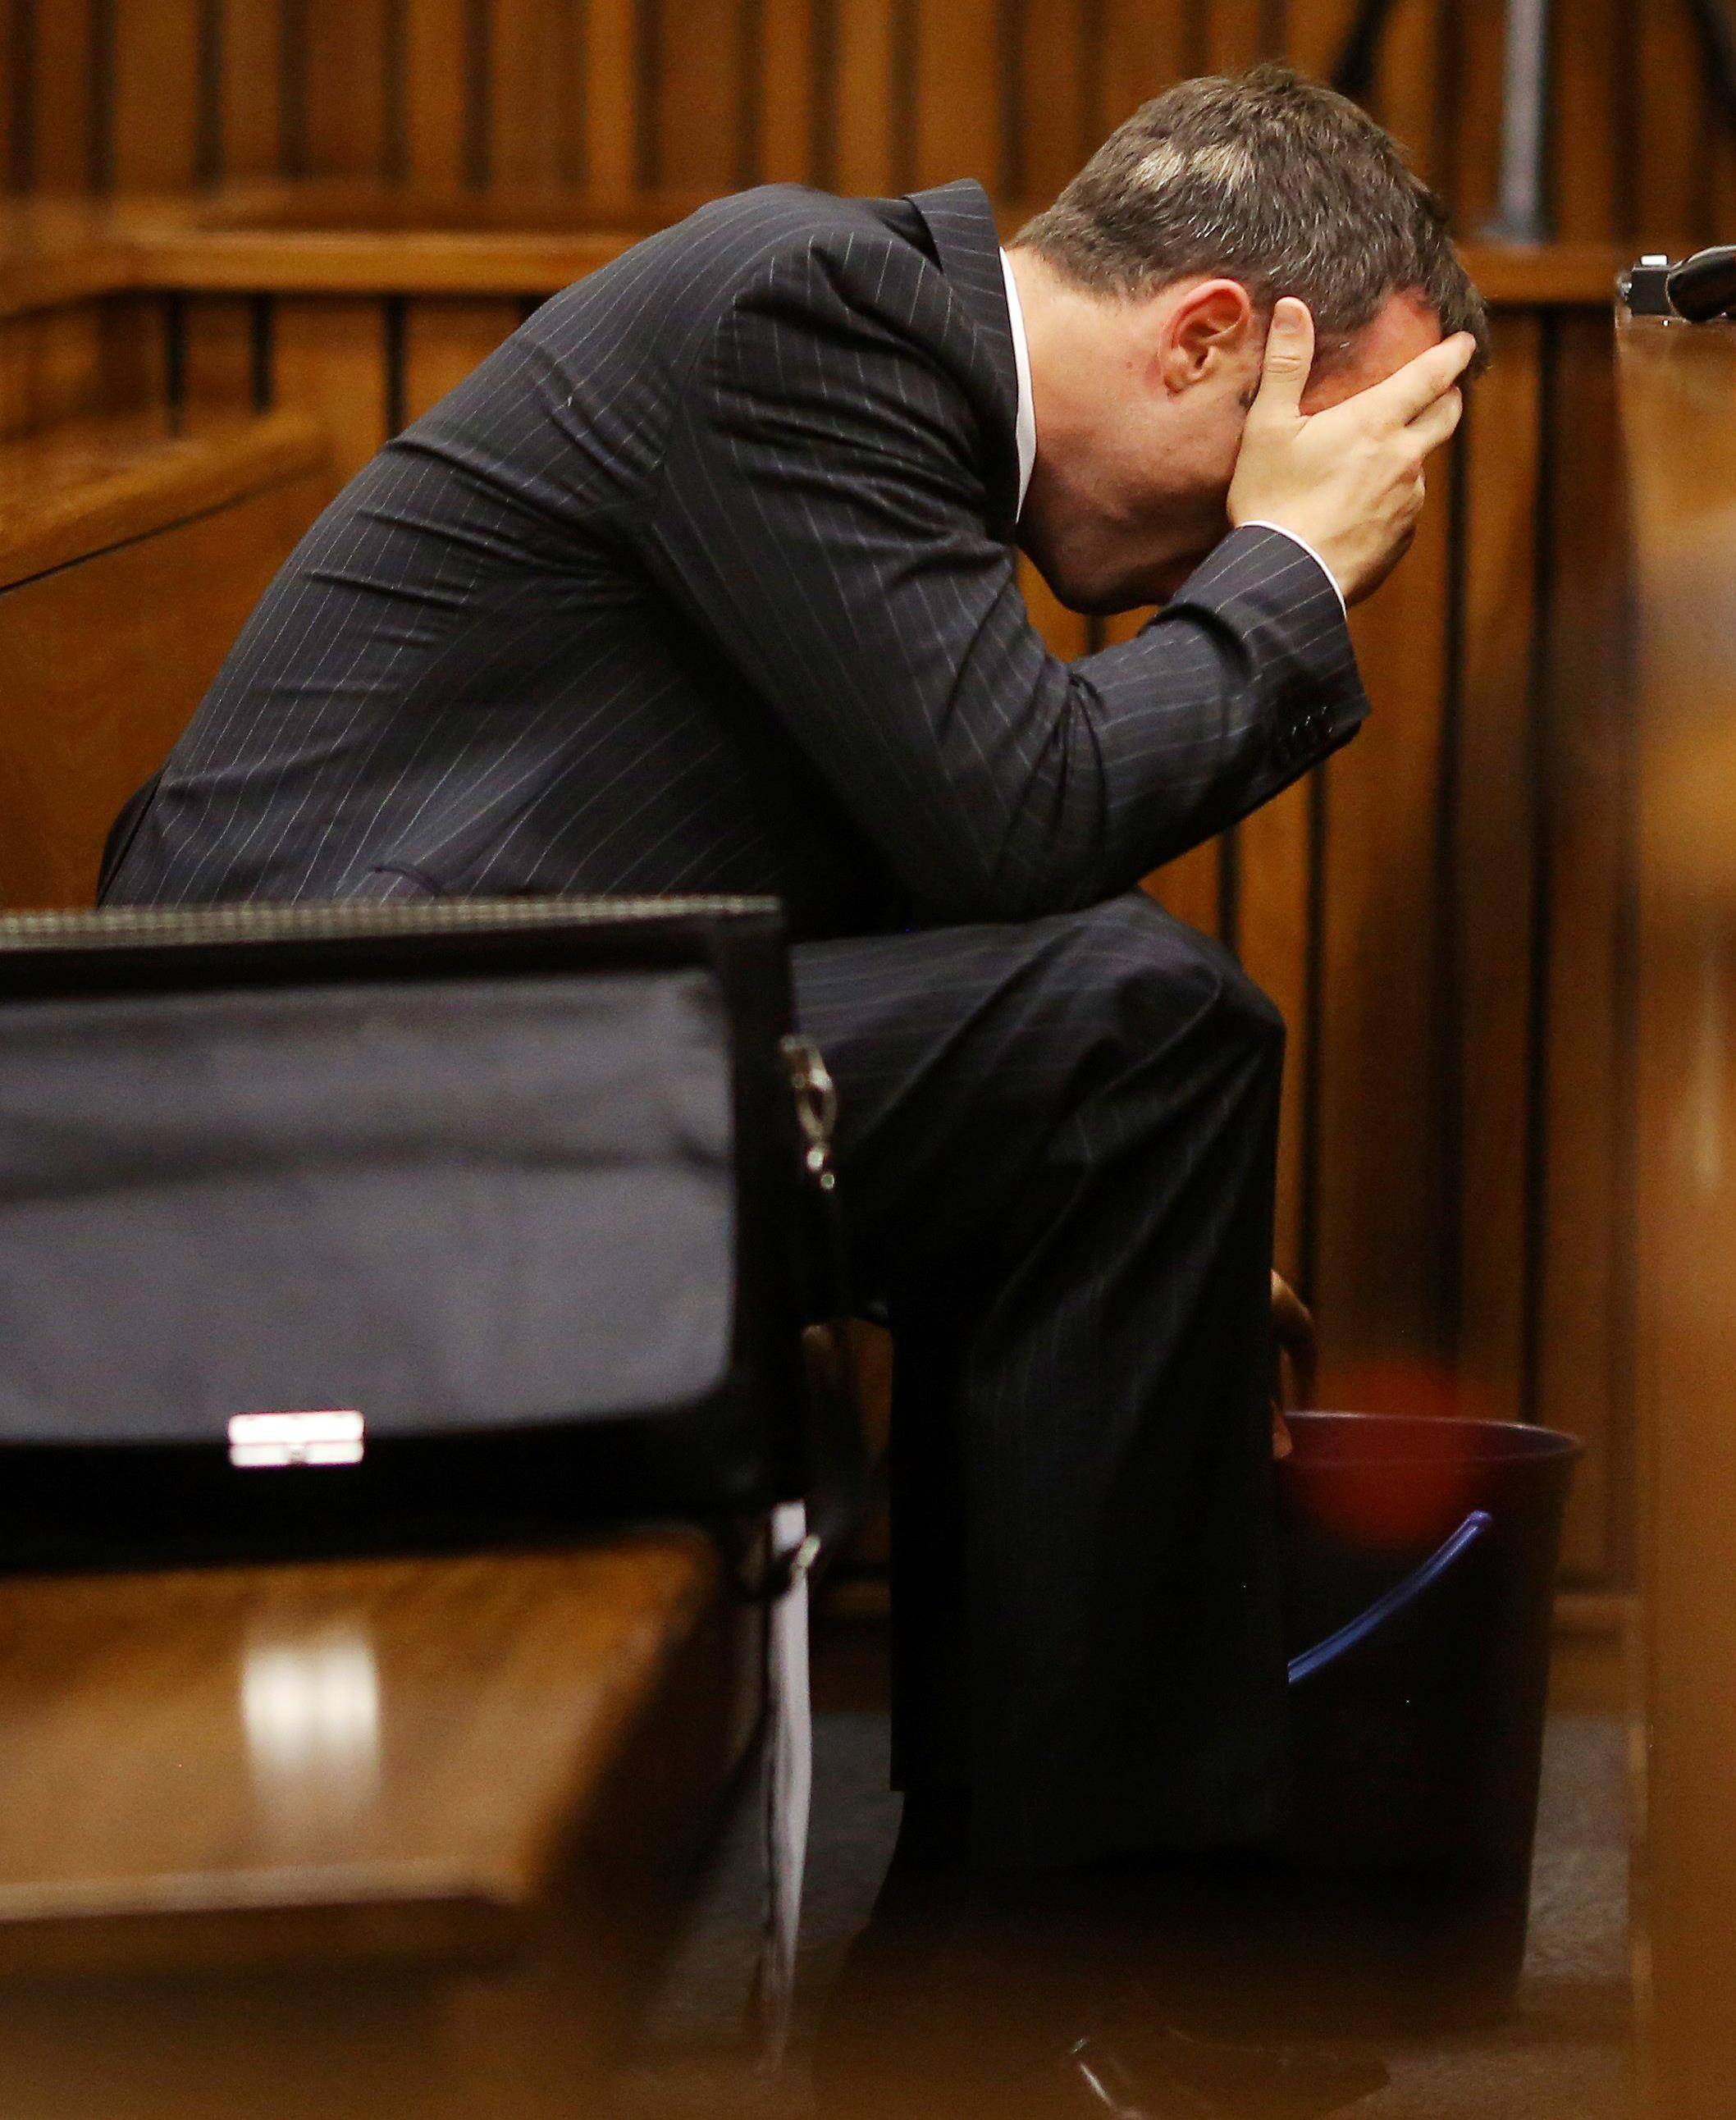 Image: Olympic and Paralympic track star Oscar Pistorius reacts as he reaches for a bucket in the dock during his trial for the murder of his girlfriend Reeva Steenkamp, at the North Gauteng High Court in Pretoria